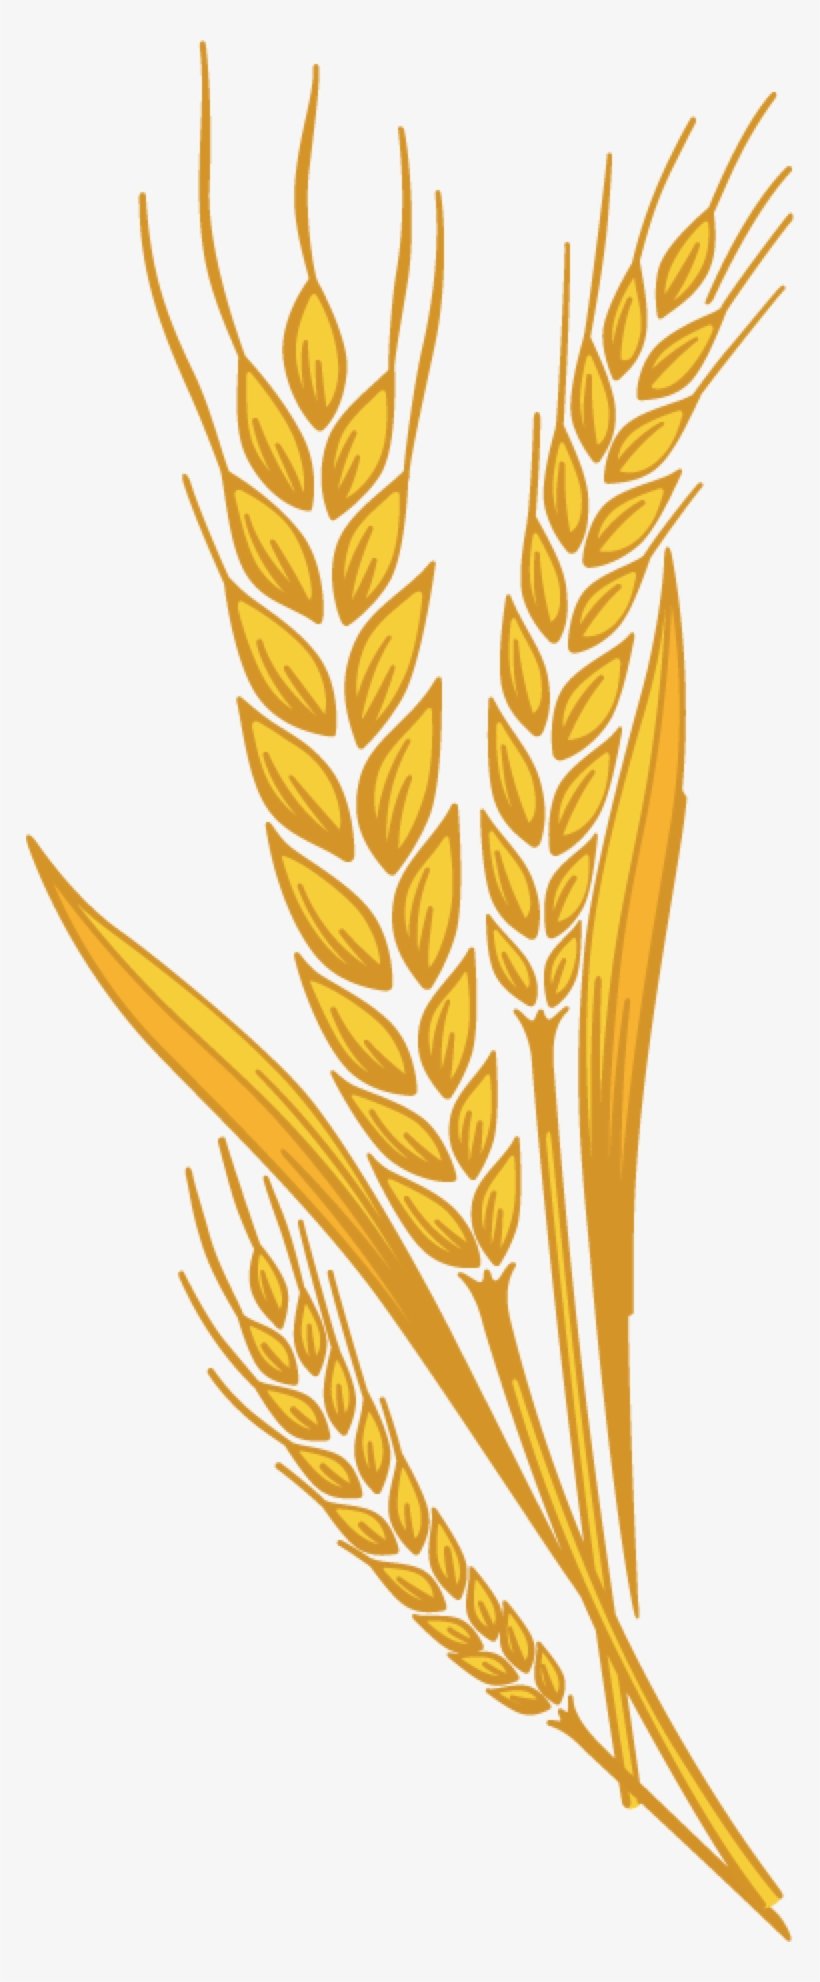 Wheat spike clipart png library library Svg Freeuse Library Barley Vector Spike Wheat - Wheat Spike Clipart ... png library library